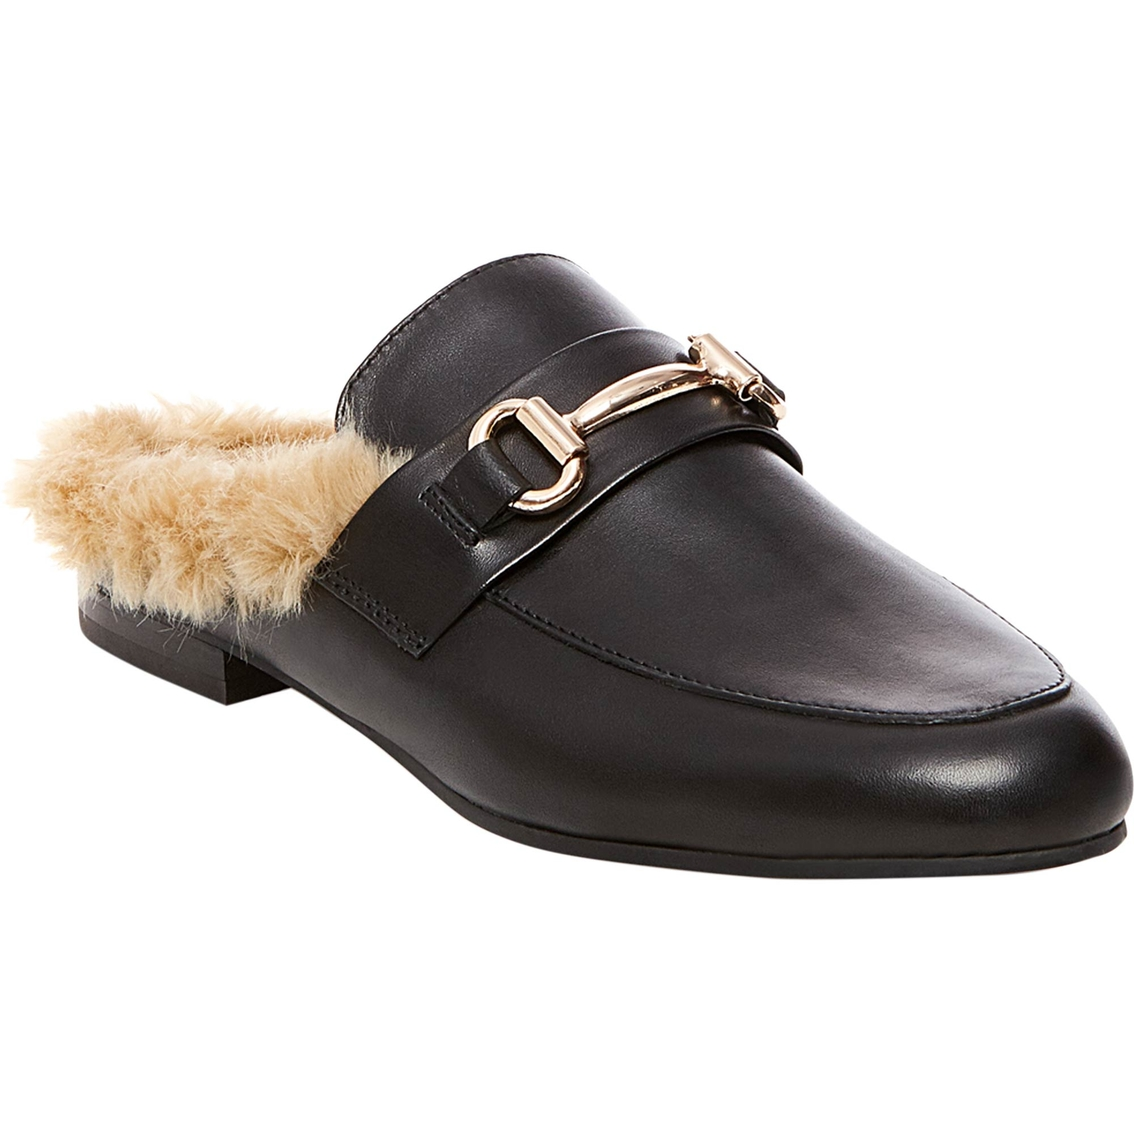 Steve Madden Jill Mule With Faux Fur